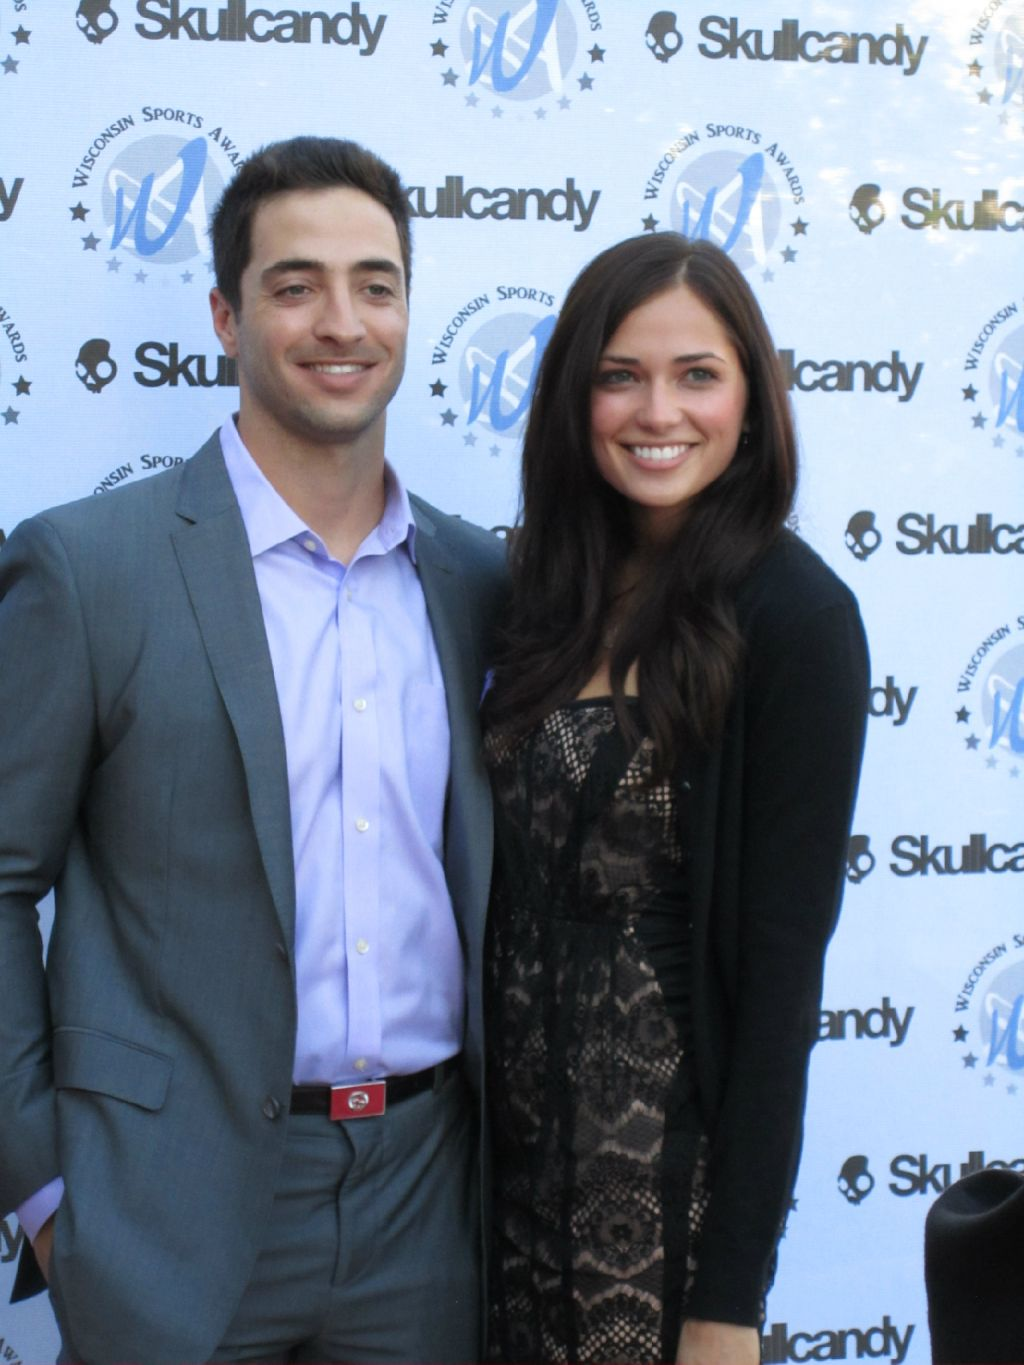 Ryan Braun's model wife Larisa Fraser Braun